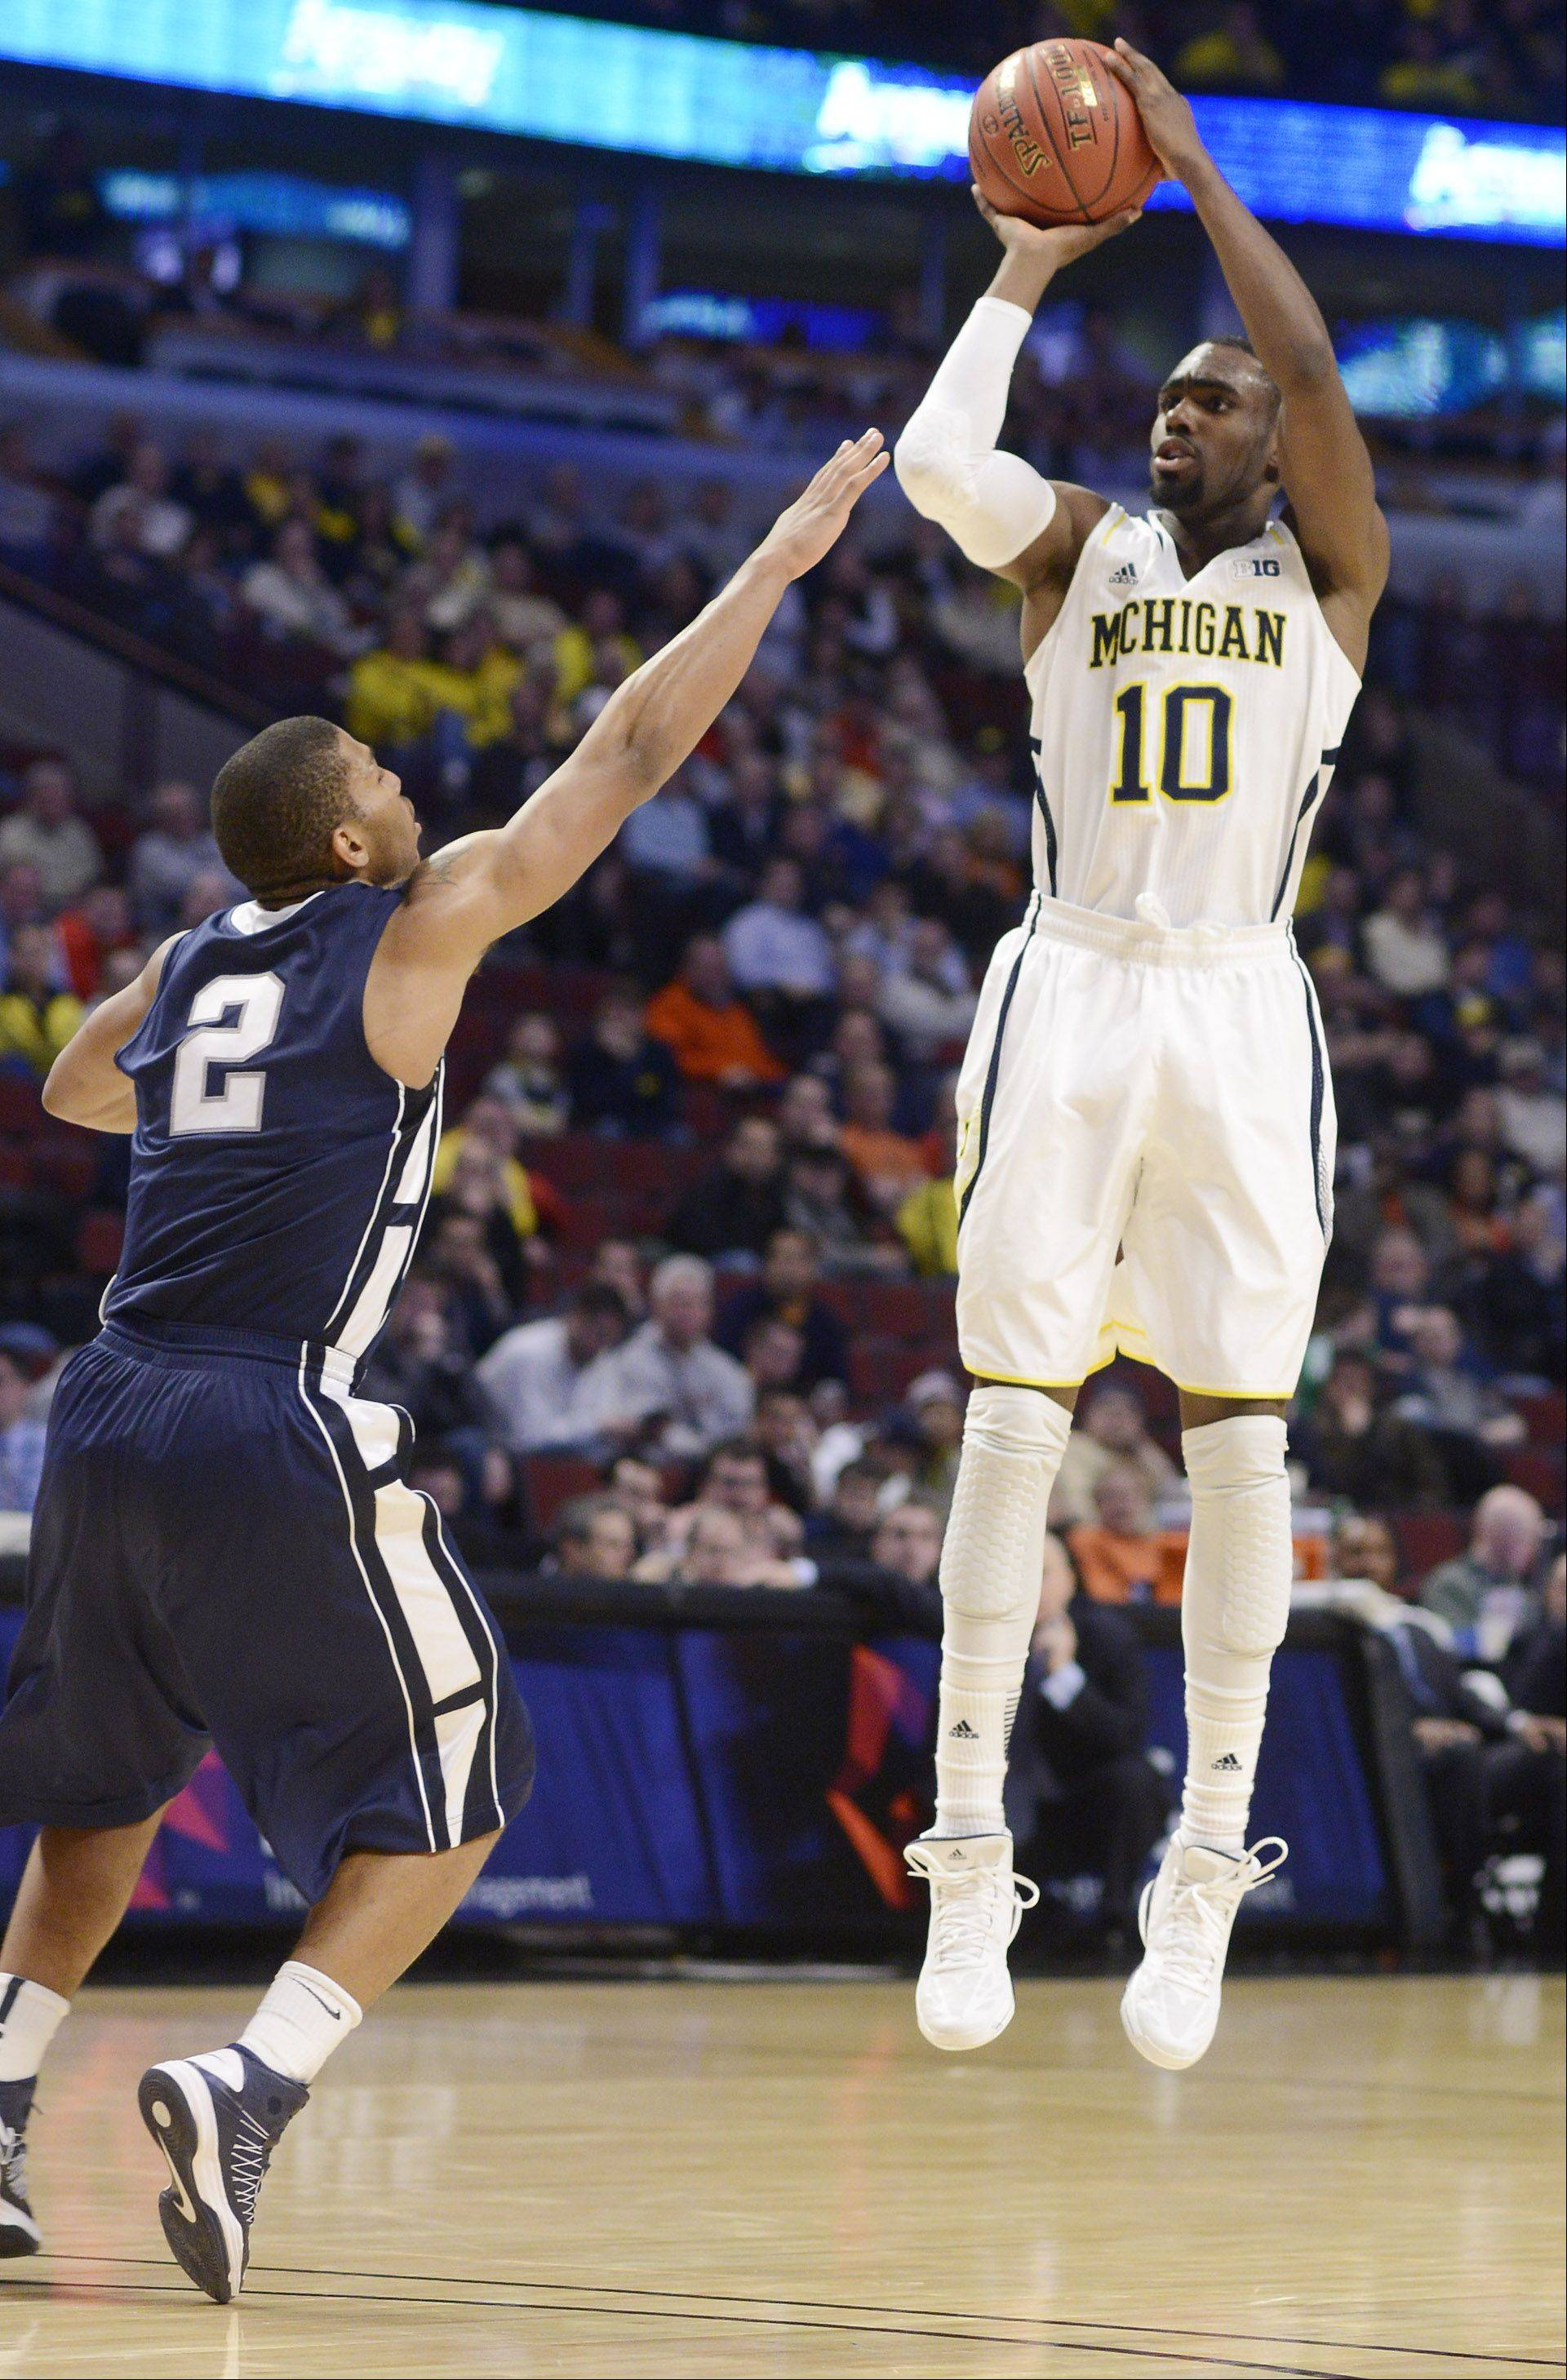 Michigan's Tim Hardaway Jr. takes a shot against Penn State defender D. J. Newbill.